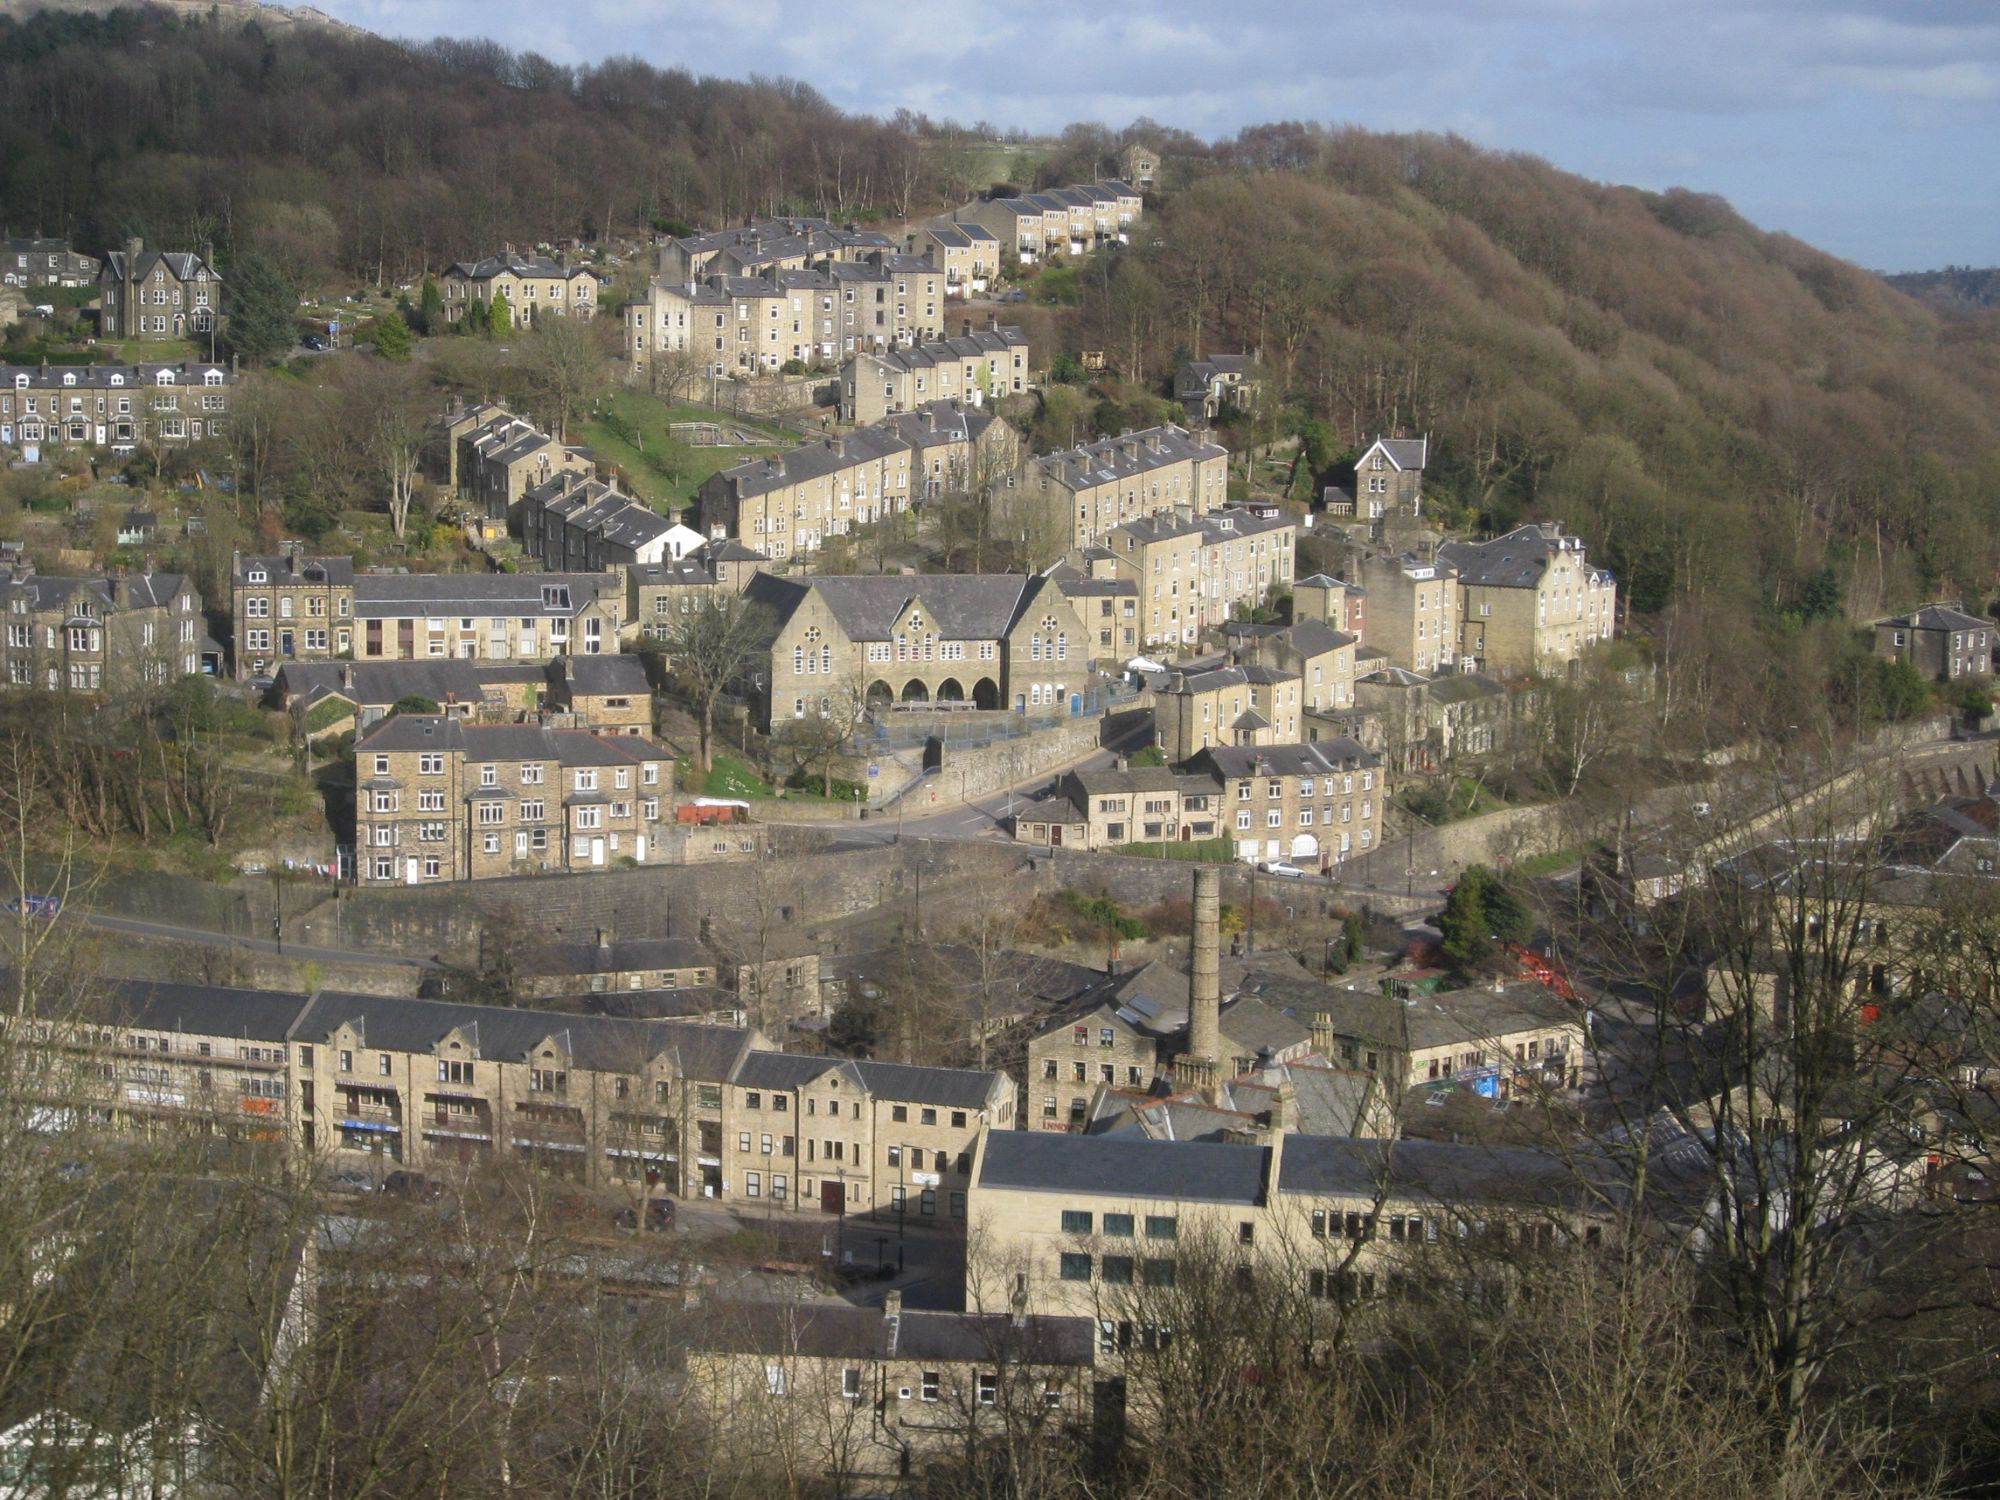 Hotels, B&Bs & Self-Catering in Hebden Bridge